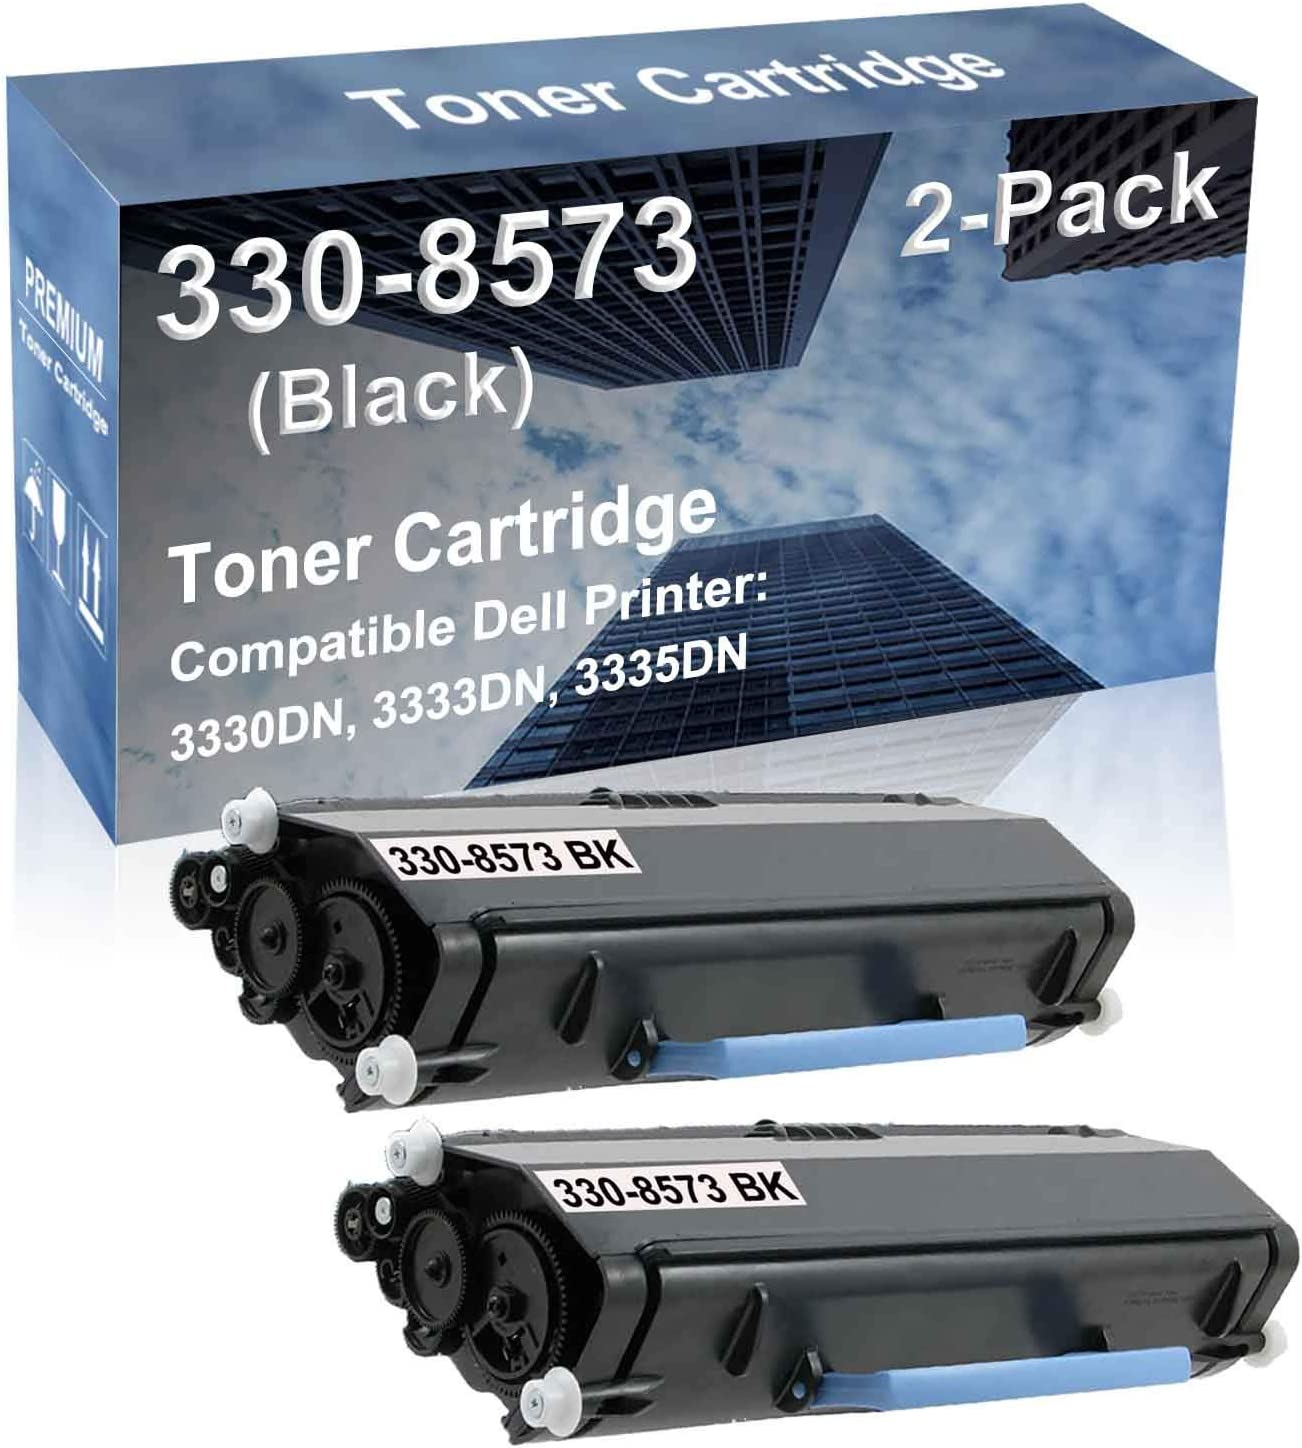 2-Pack Compatible High Capacity 3330DN, 3333DN, 3335DN Printer Toner Cartridge Replacement for Dell 330-8573 (N27GW) Printer Cartridge (Black)